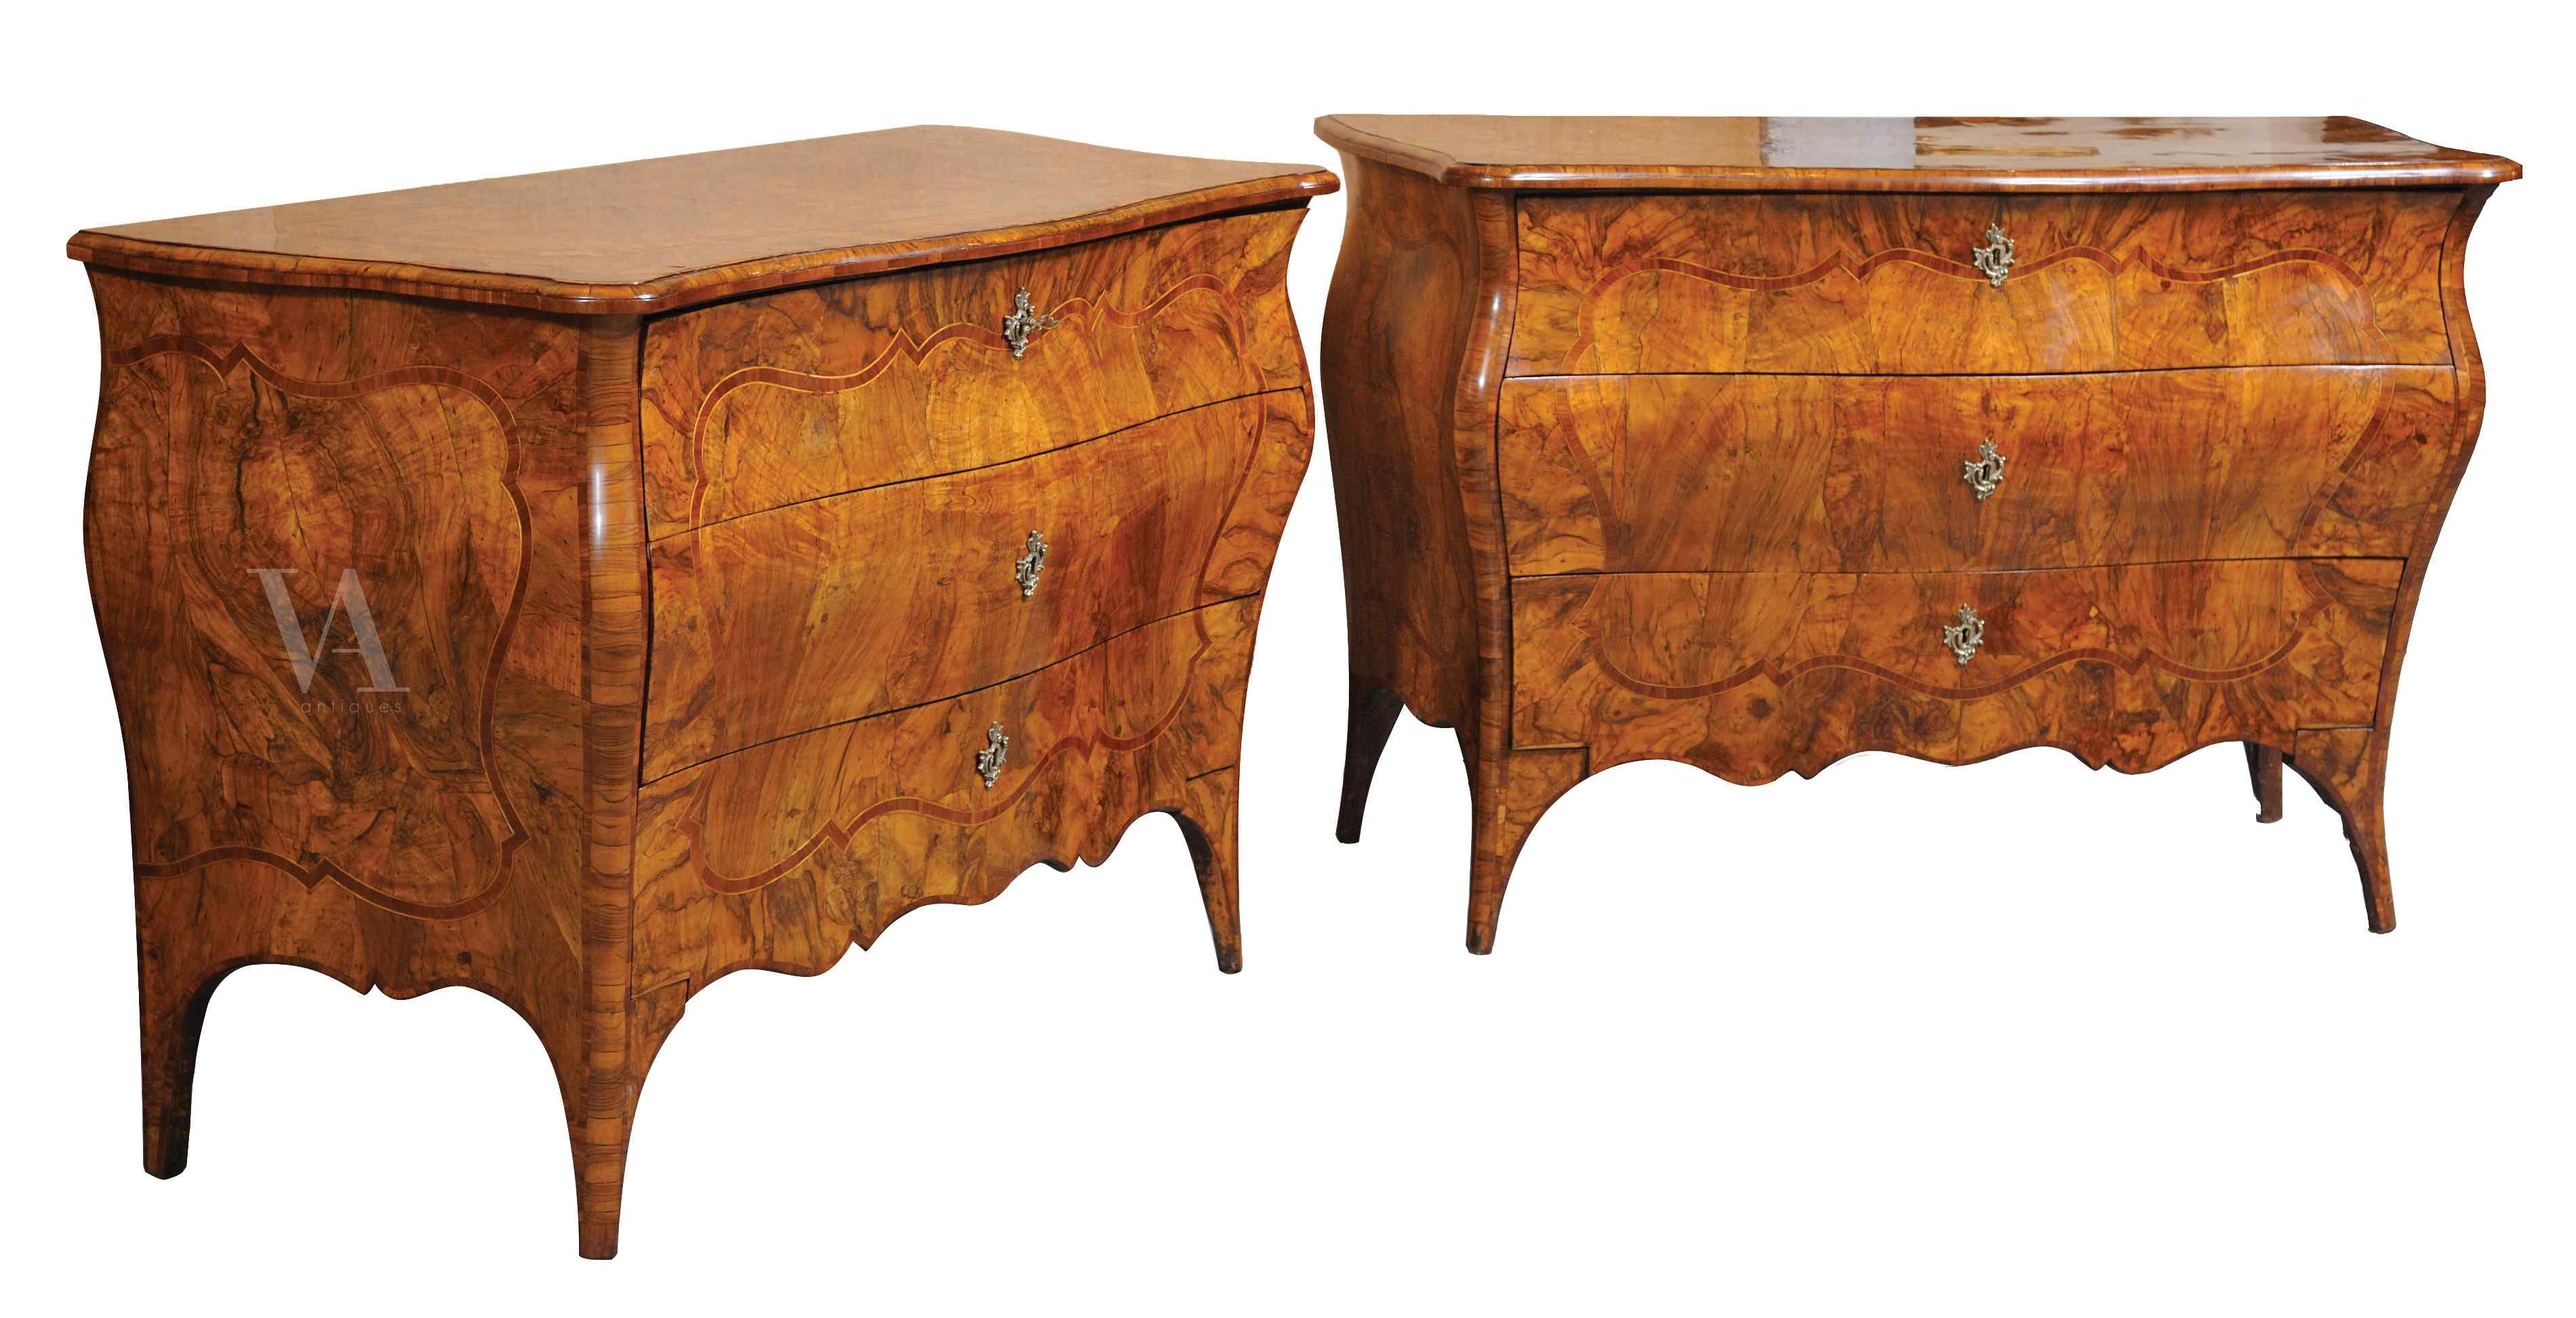 Pair of important chest of drawers, Lombardy sec. XVIII